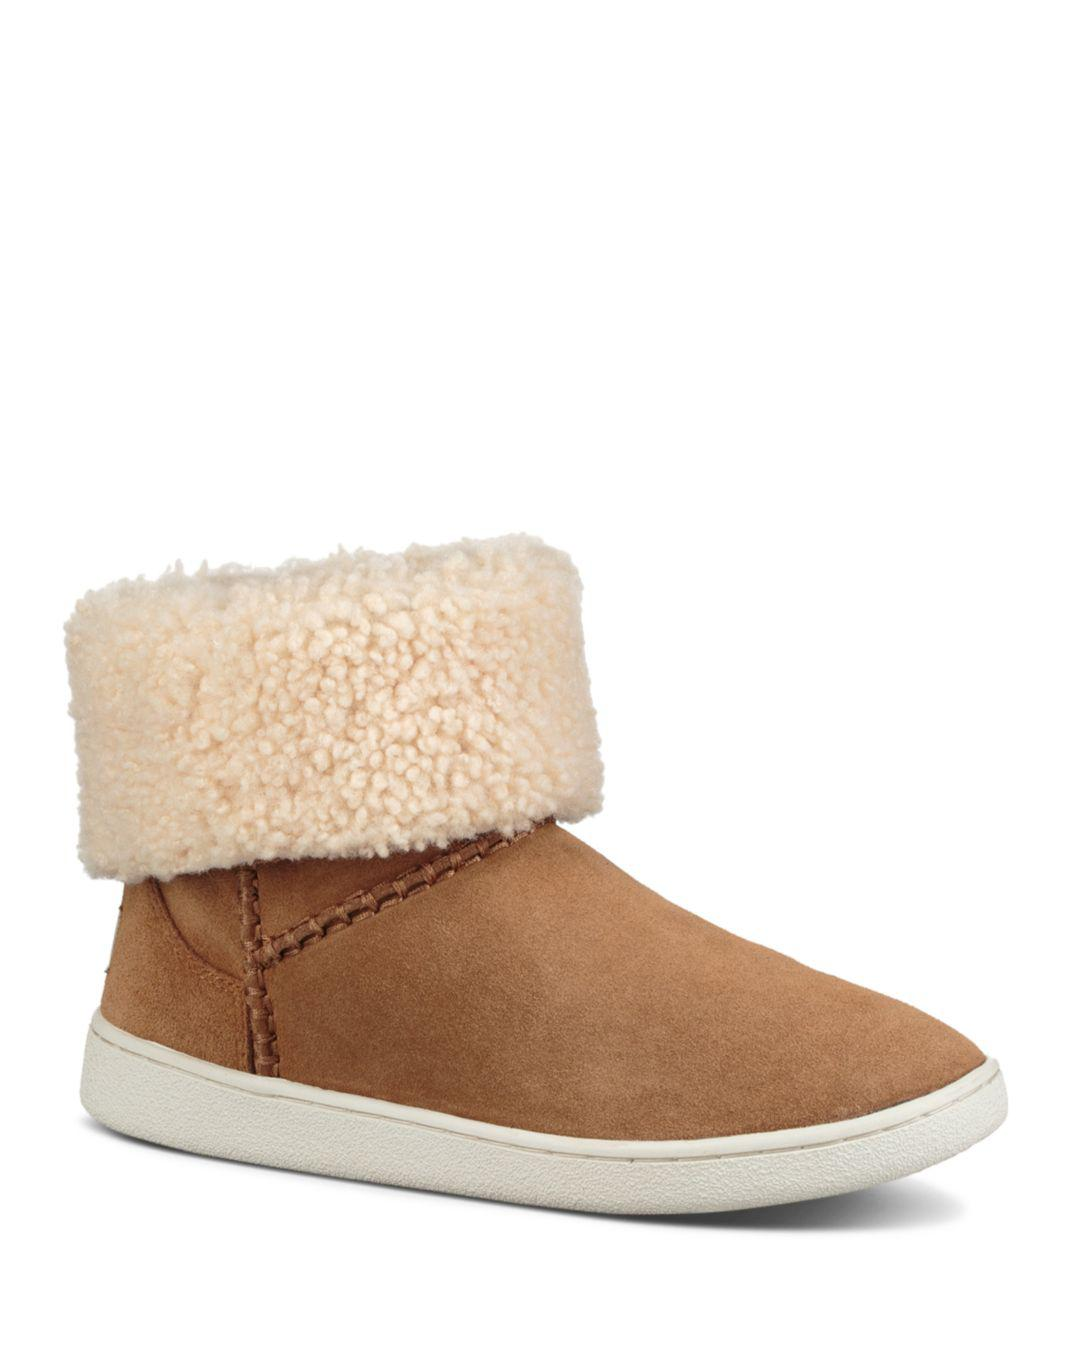 4757e9bd5f1 Brown Women's Mika Classic Suede Slip On Sneakers